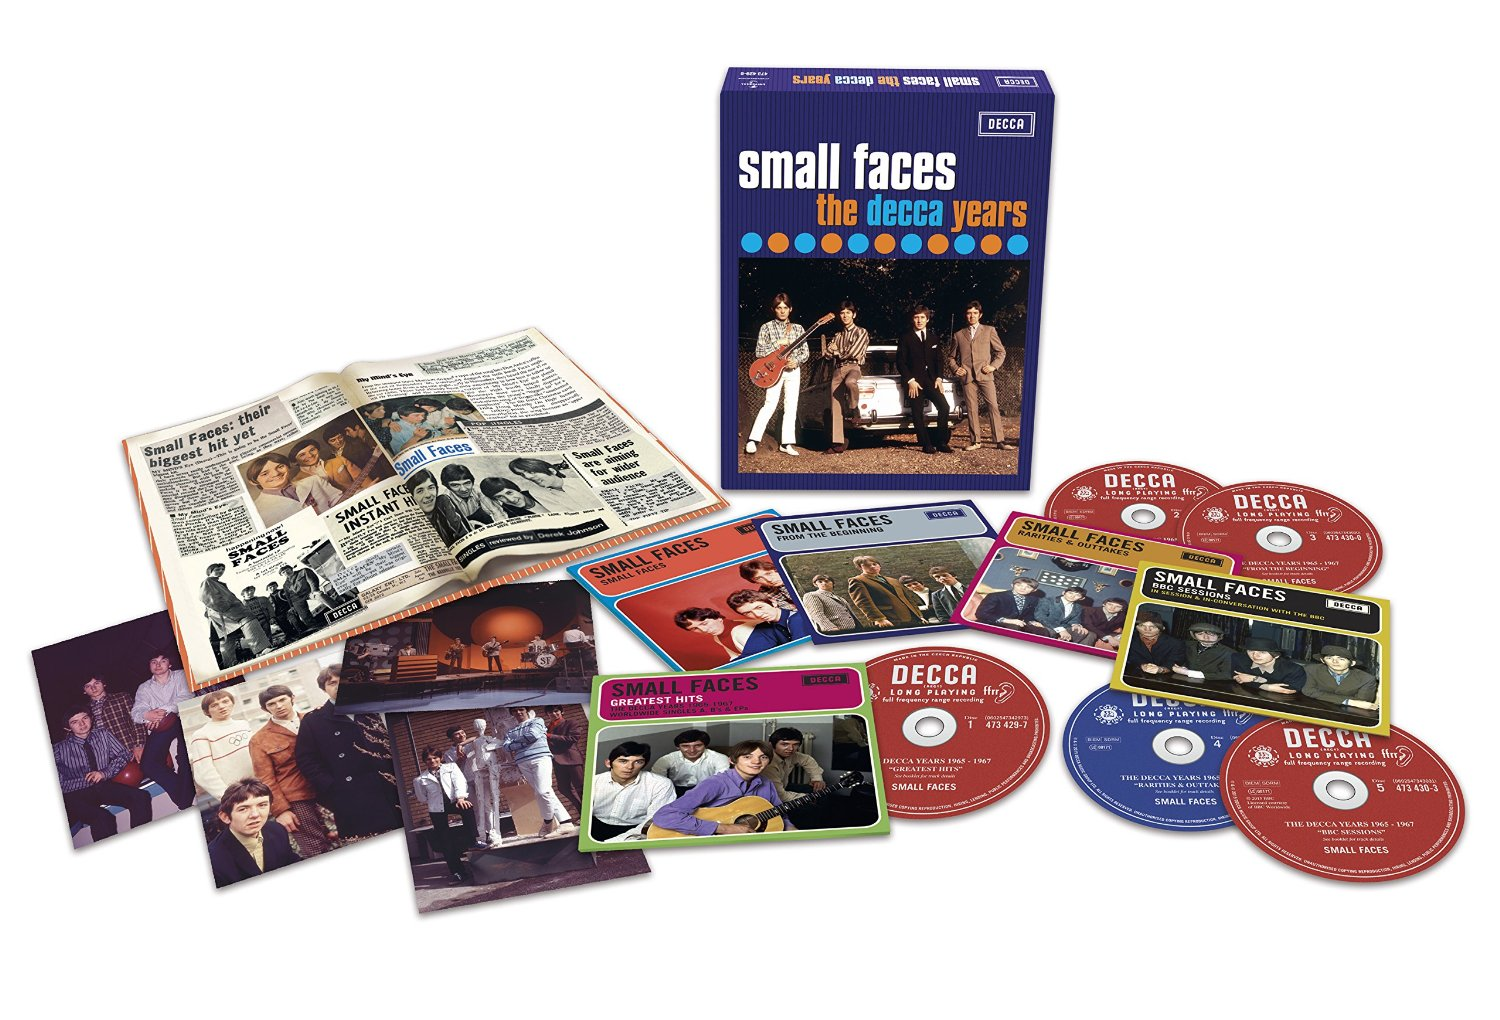 Small Faces: The Decca Years